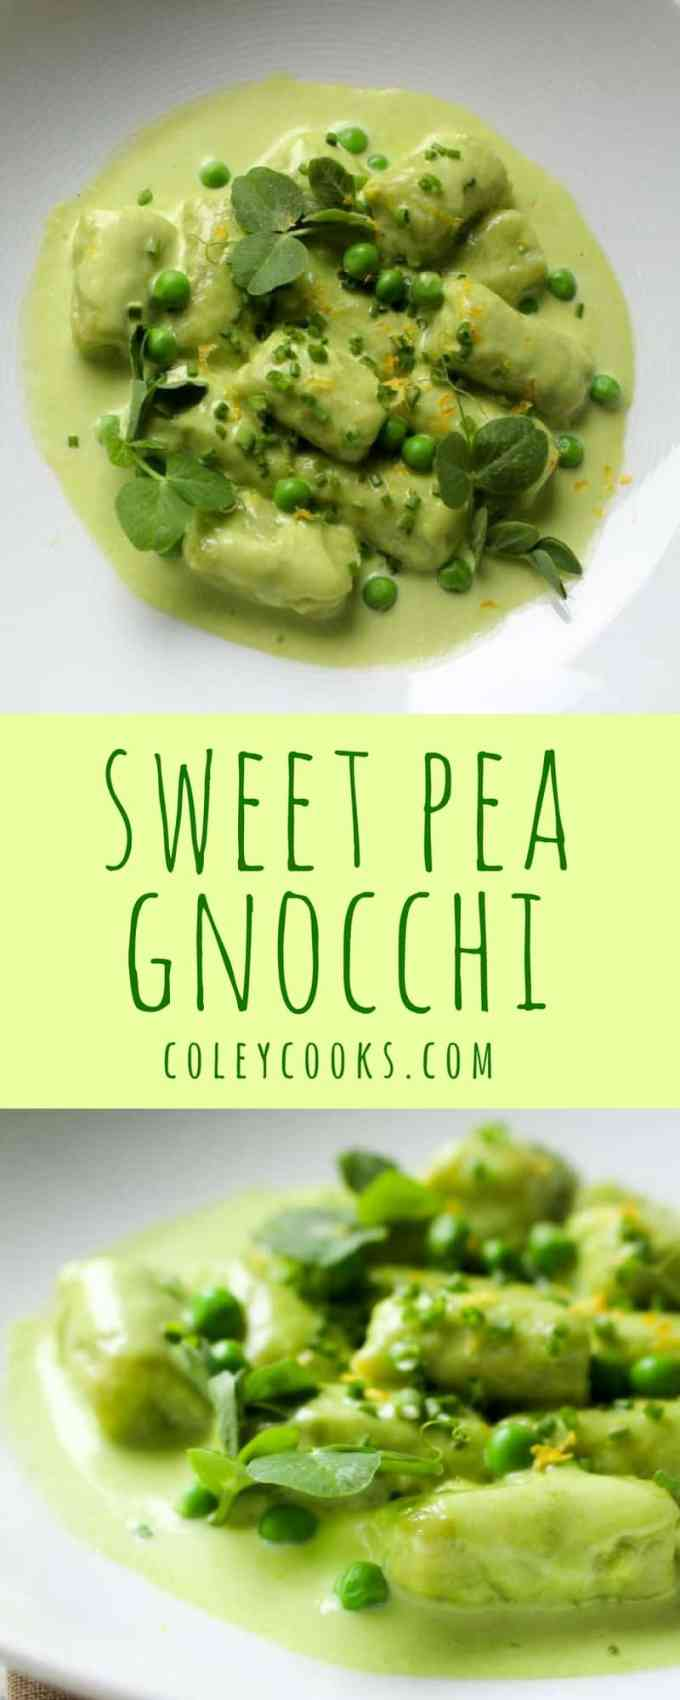 SWEET PEA GNOCCHI with Tarragon Pea Cream | A Beautiful Spring Recipe | ColeyCooks.com